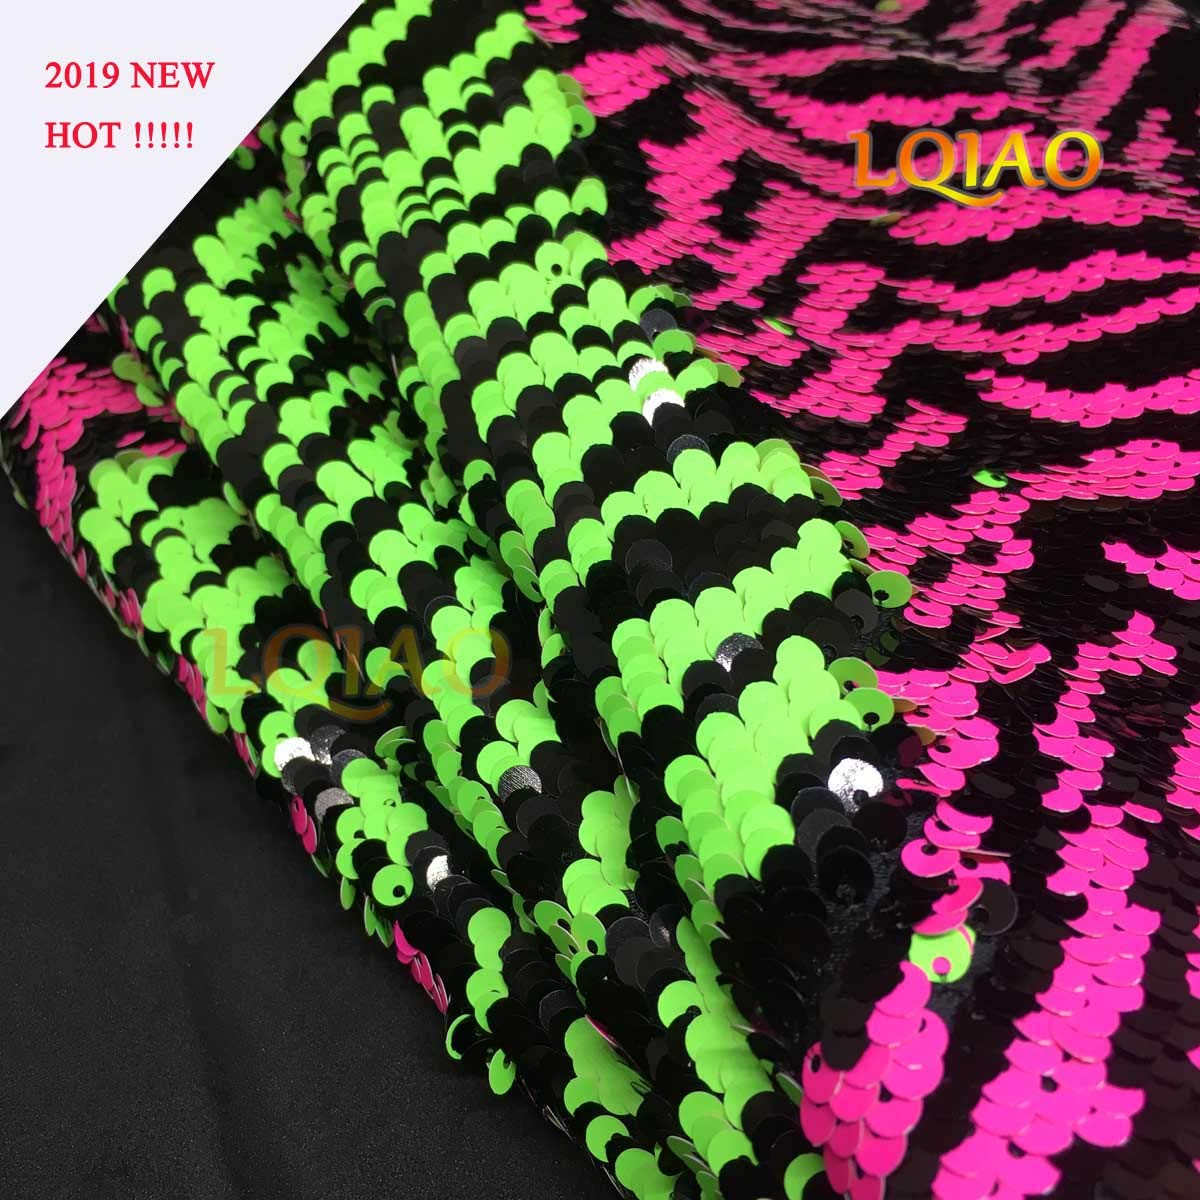 e9aba300bdff52 LQIAO Sequin Fabric Color Change Multicolor Zebra Green Neon Pink Strips  Reversible Mermaid Sold by The Yard Two Tone Flip UP Sequin Cover Shimmer  Fabric ...